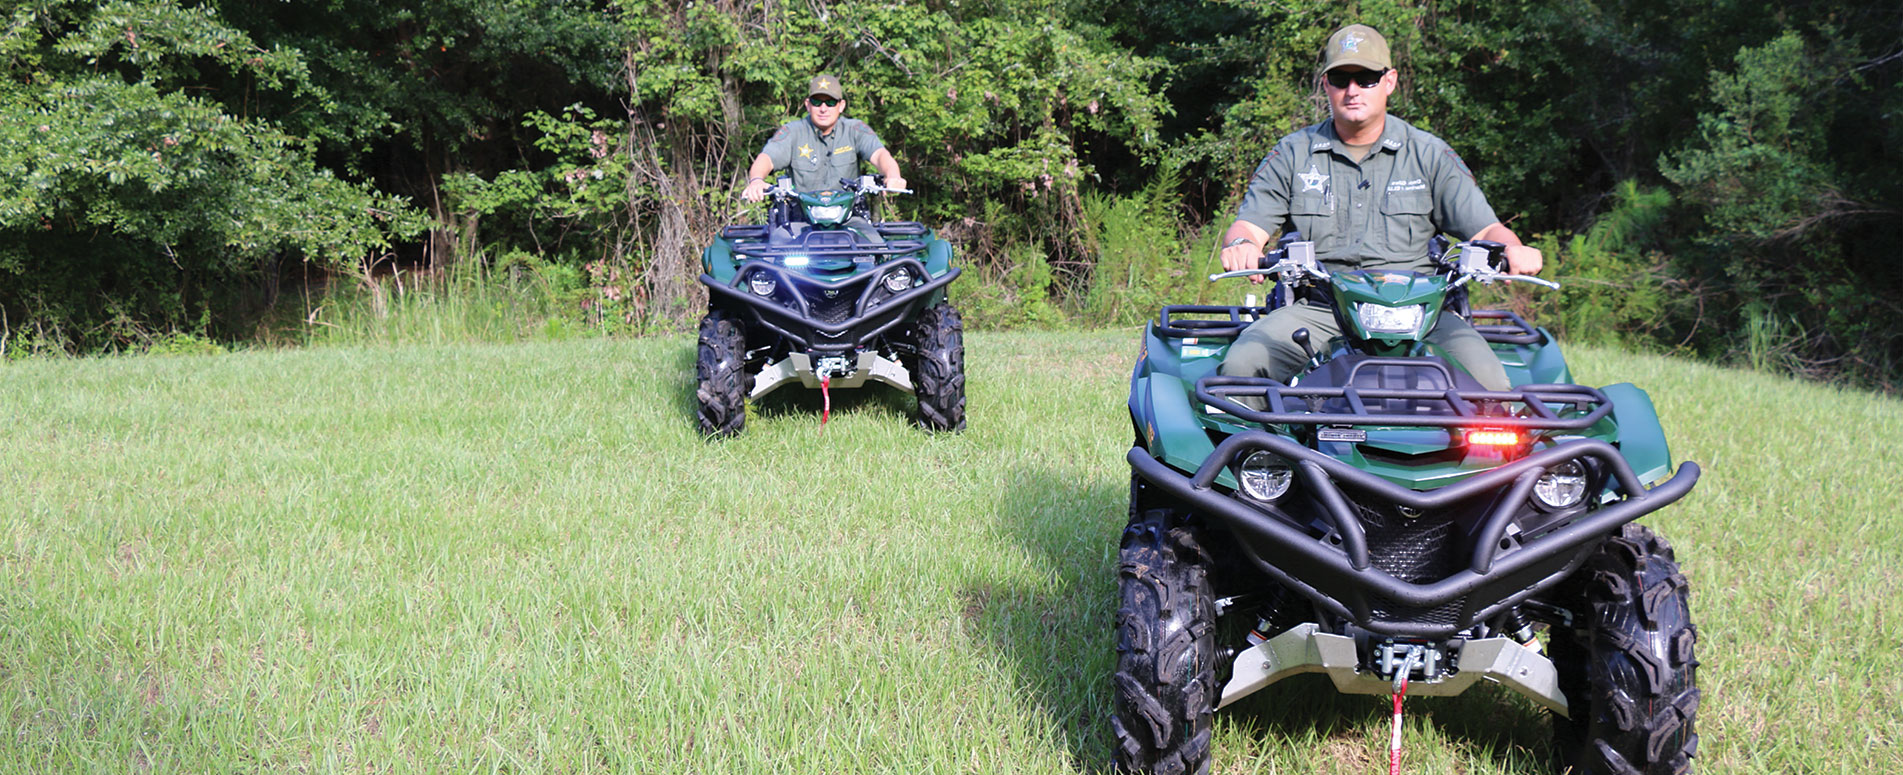 Two male deputies driving ATVs through the grass, toward the camera